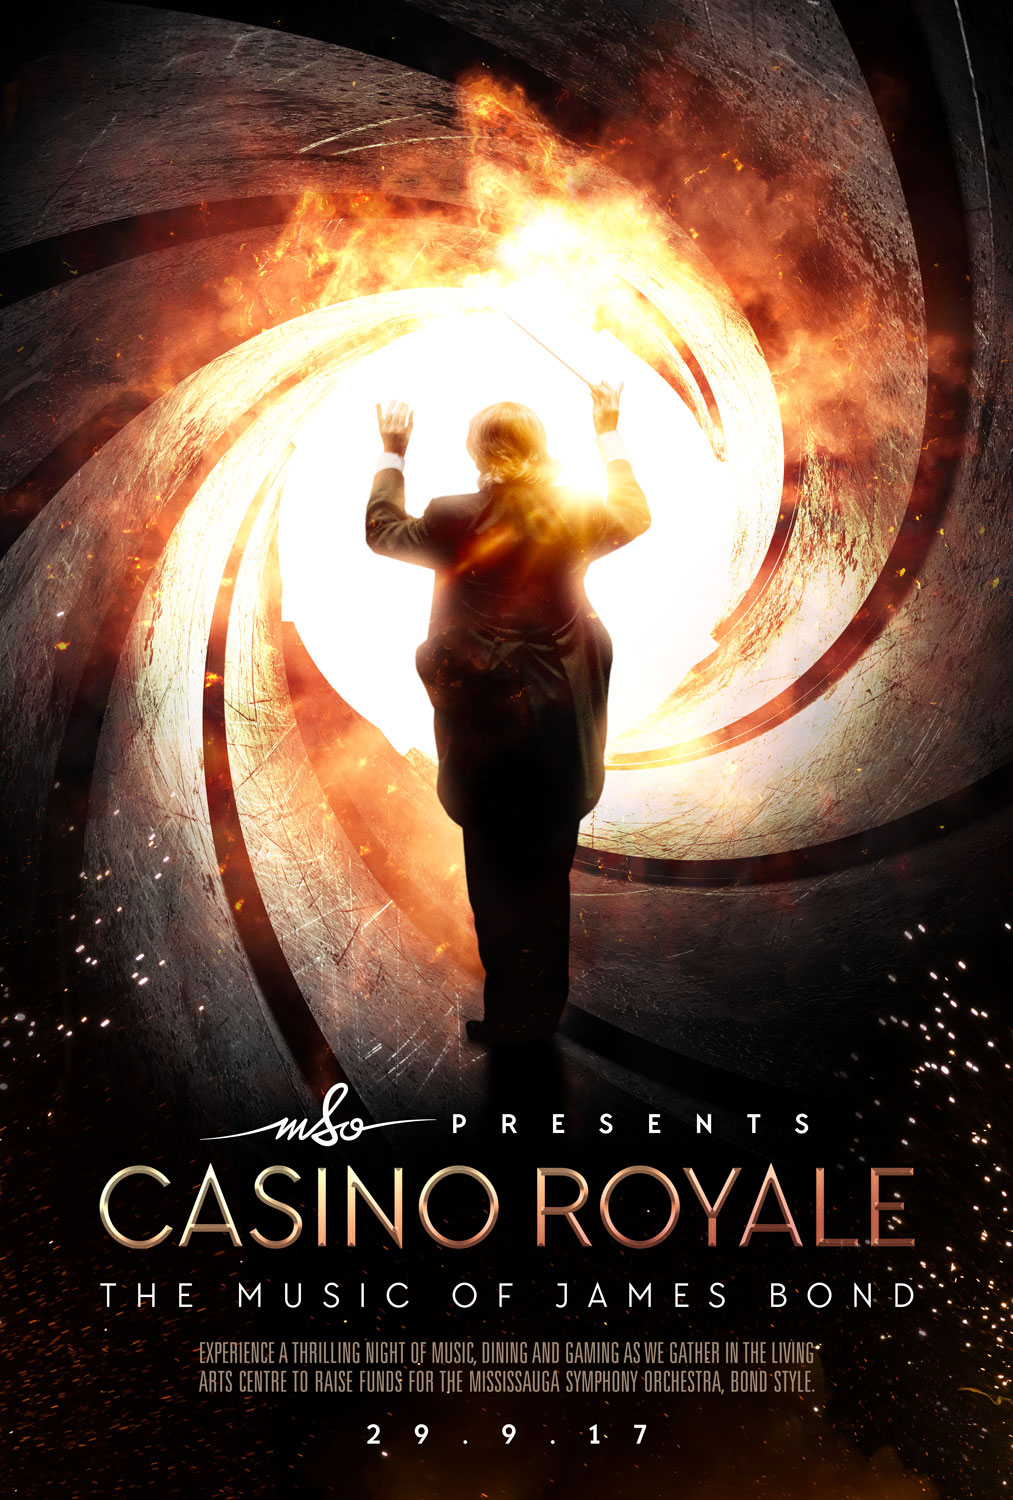 Casino Royale concert poster